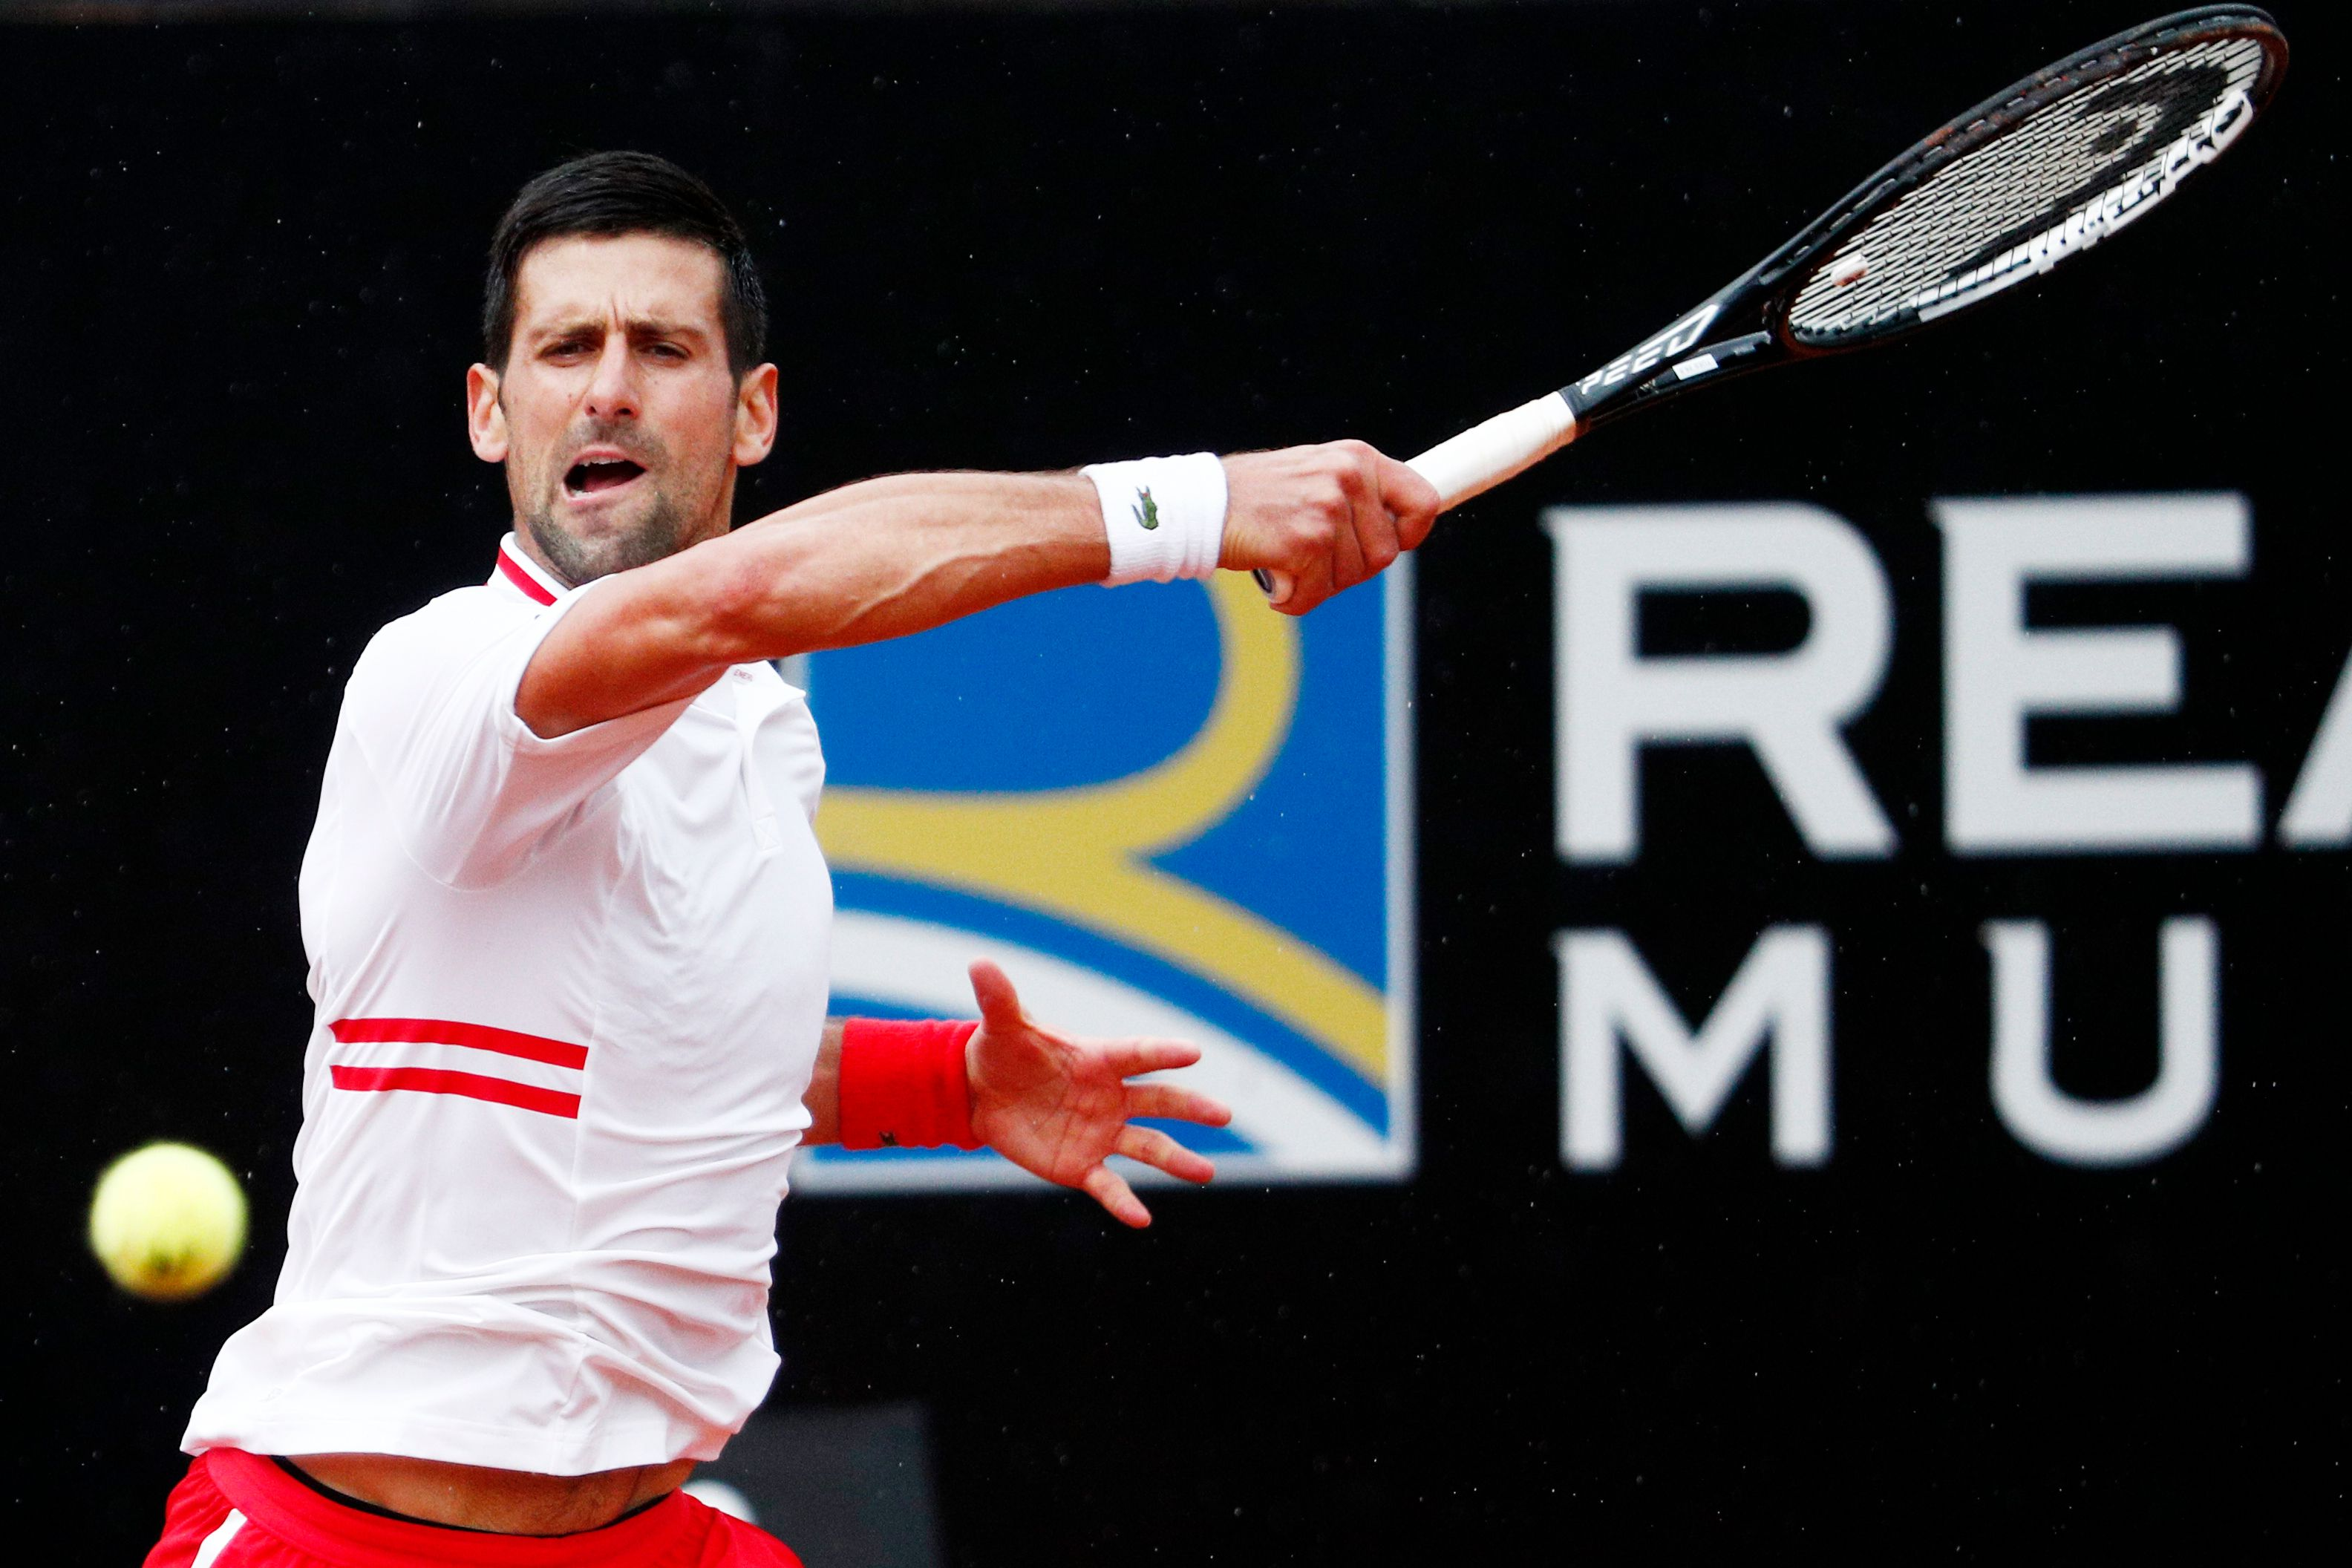 Tennis - ATP Masters 1000 - Italian Open - Foro Italico, Rome, Italy - May 11, 2021 Serbia's Novak Djokovic in action during his second round match against Taylor Fritz of the U.S. REUTERS/Guglielmo Mangiapane